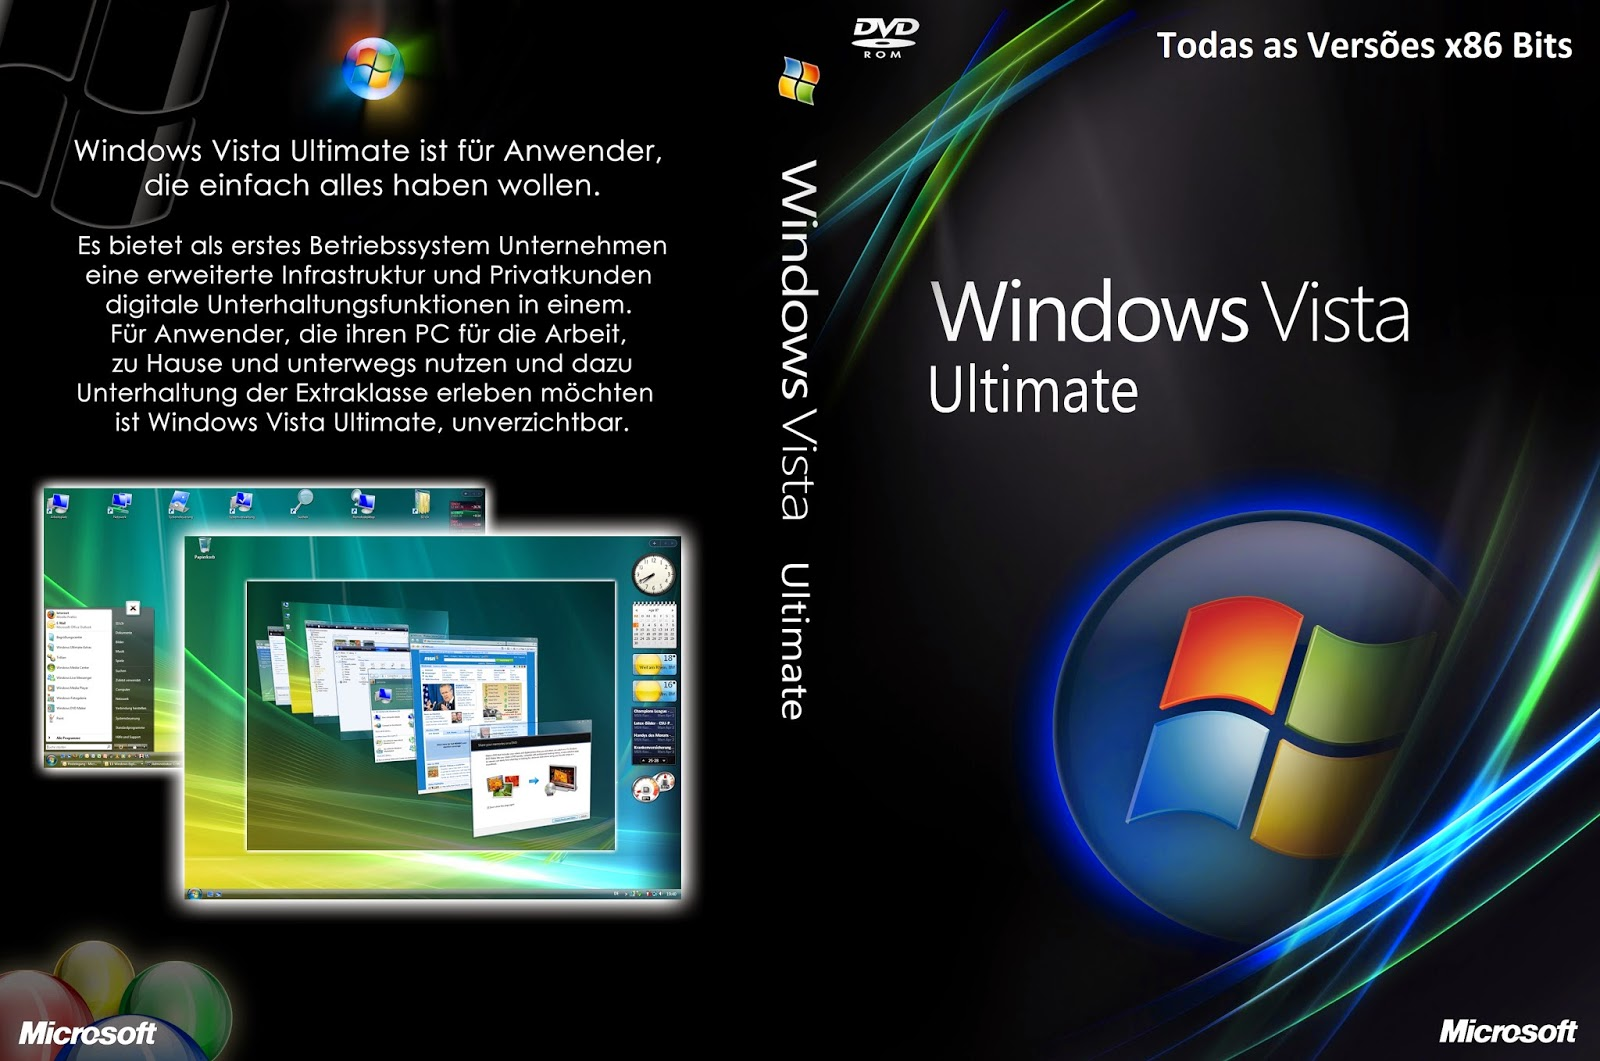 Windows Vista Todas as Versões x86 Bits DVD Capa